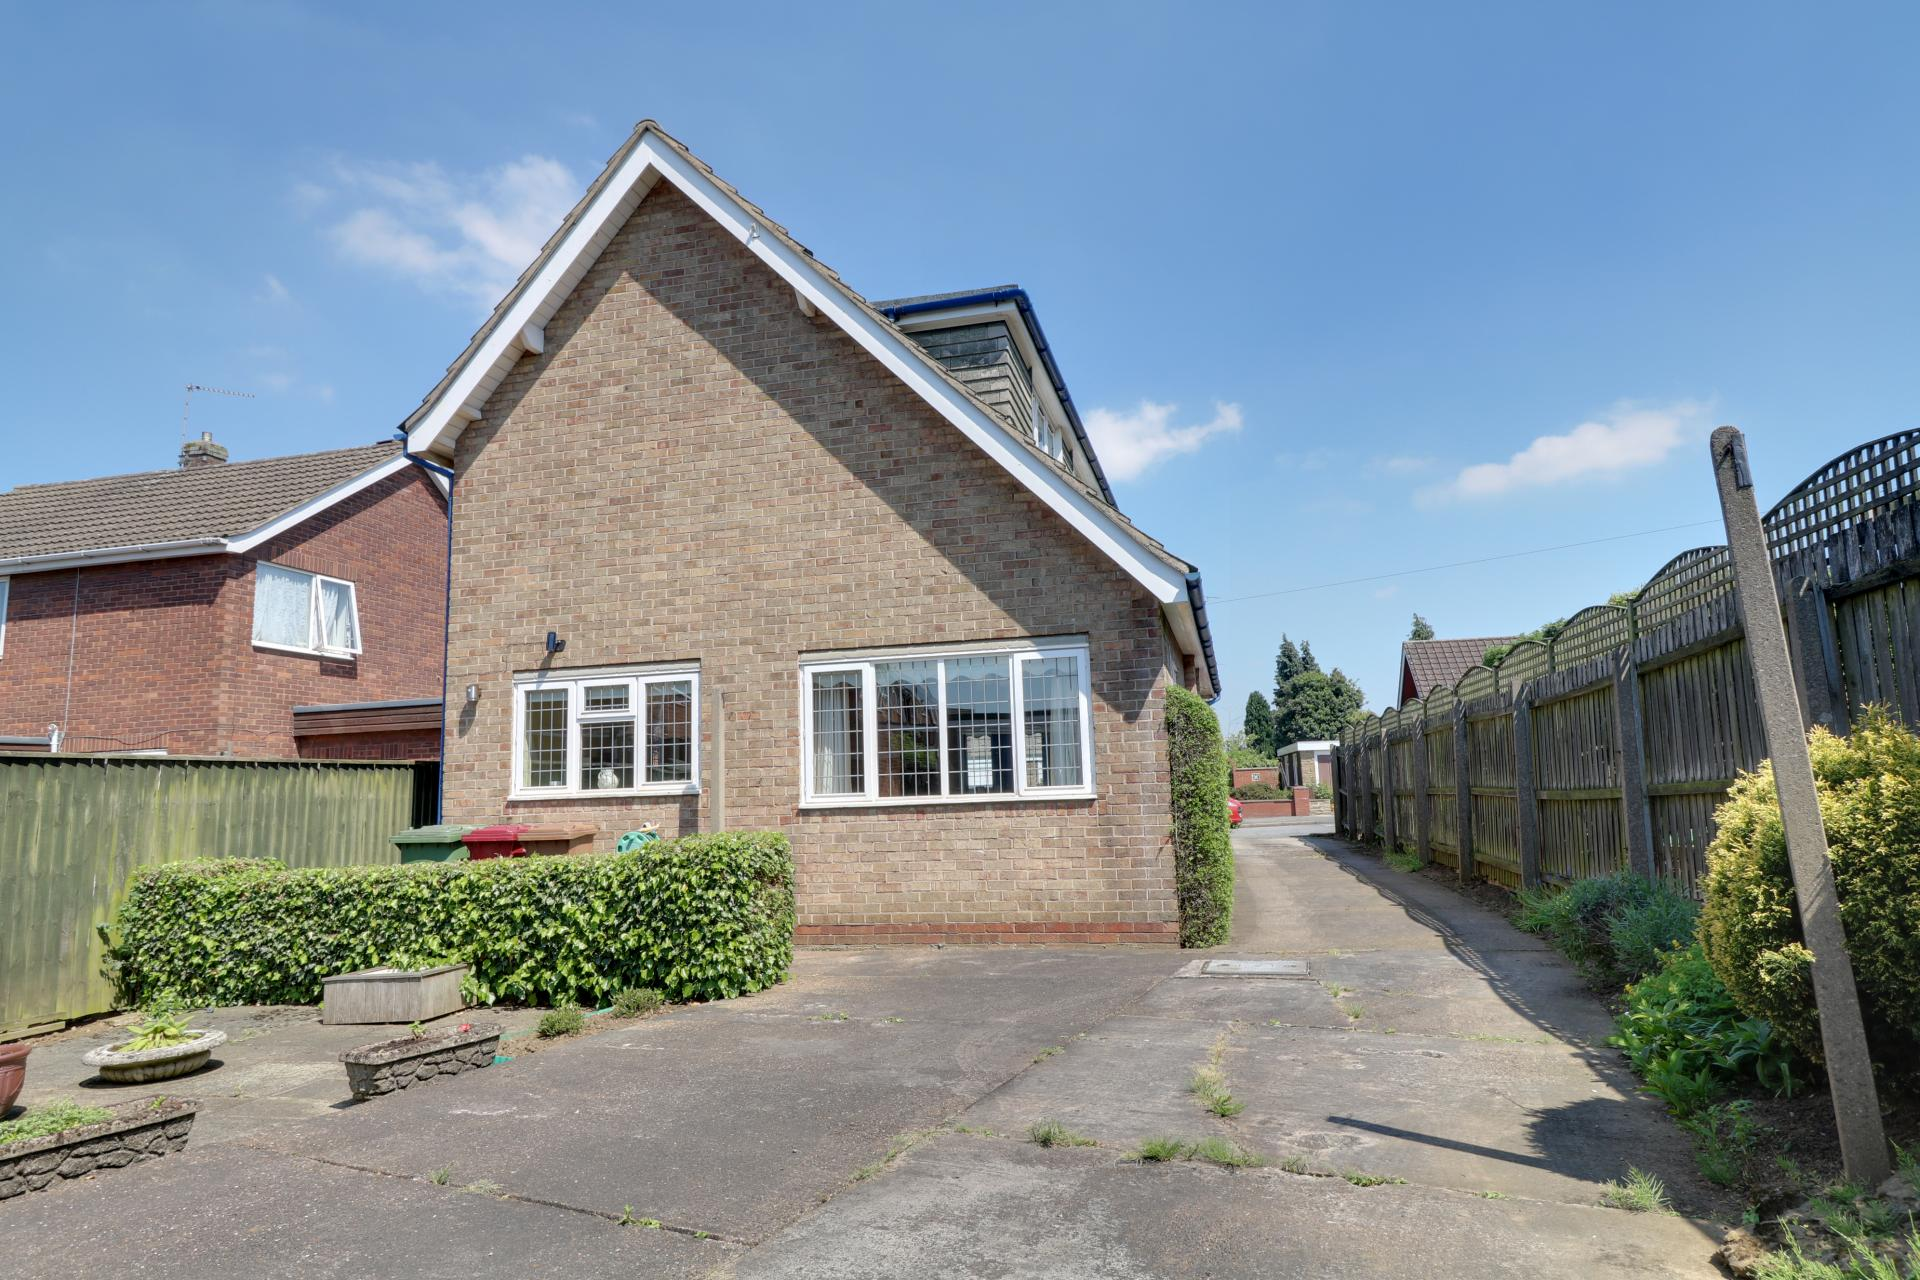 Property For Sale In Scunthorpe